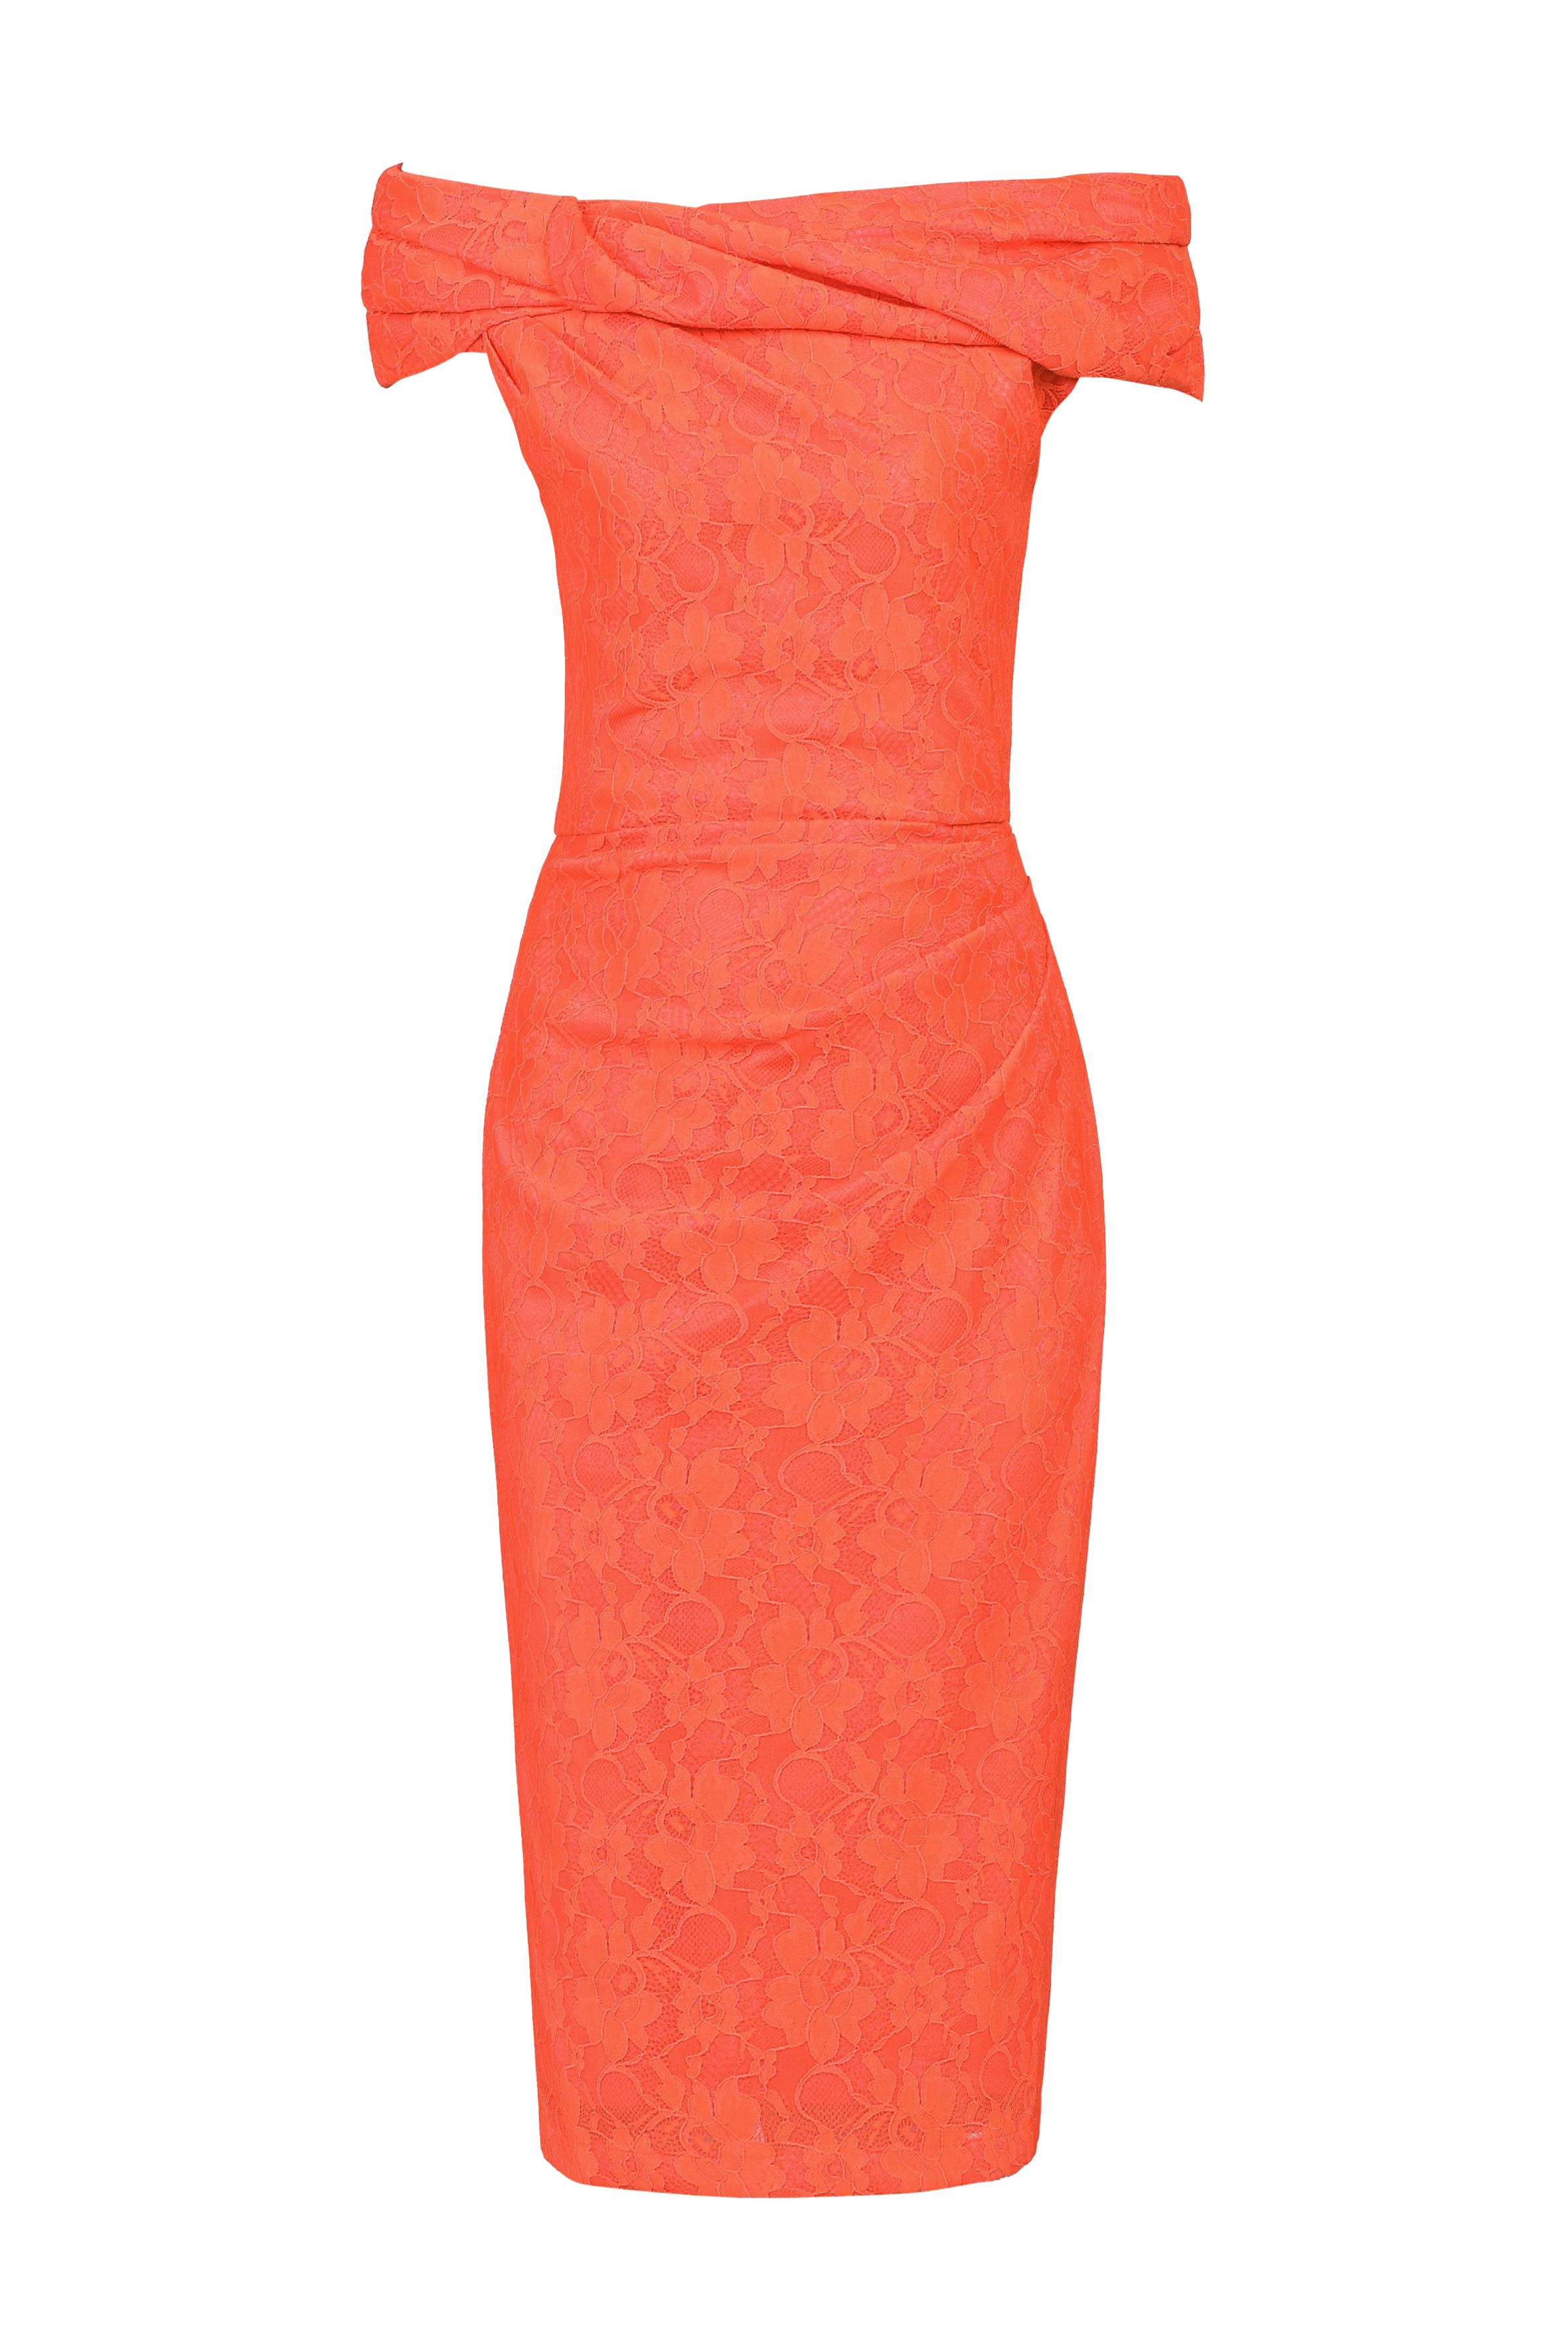 Jolie Moi Lace Bonded Bardot Dress, Coral